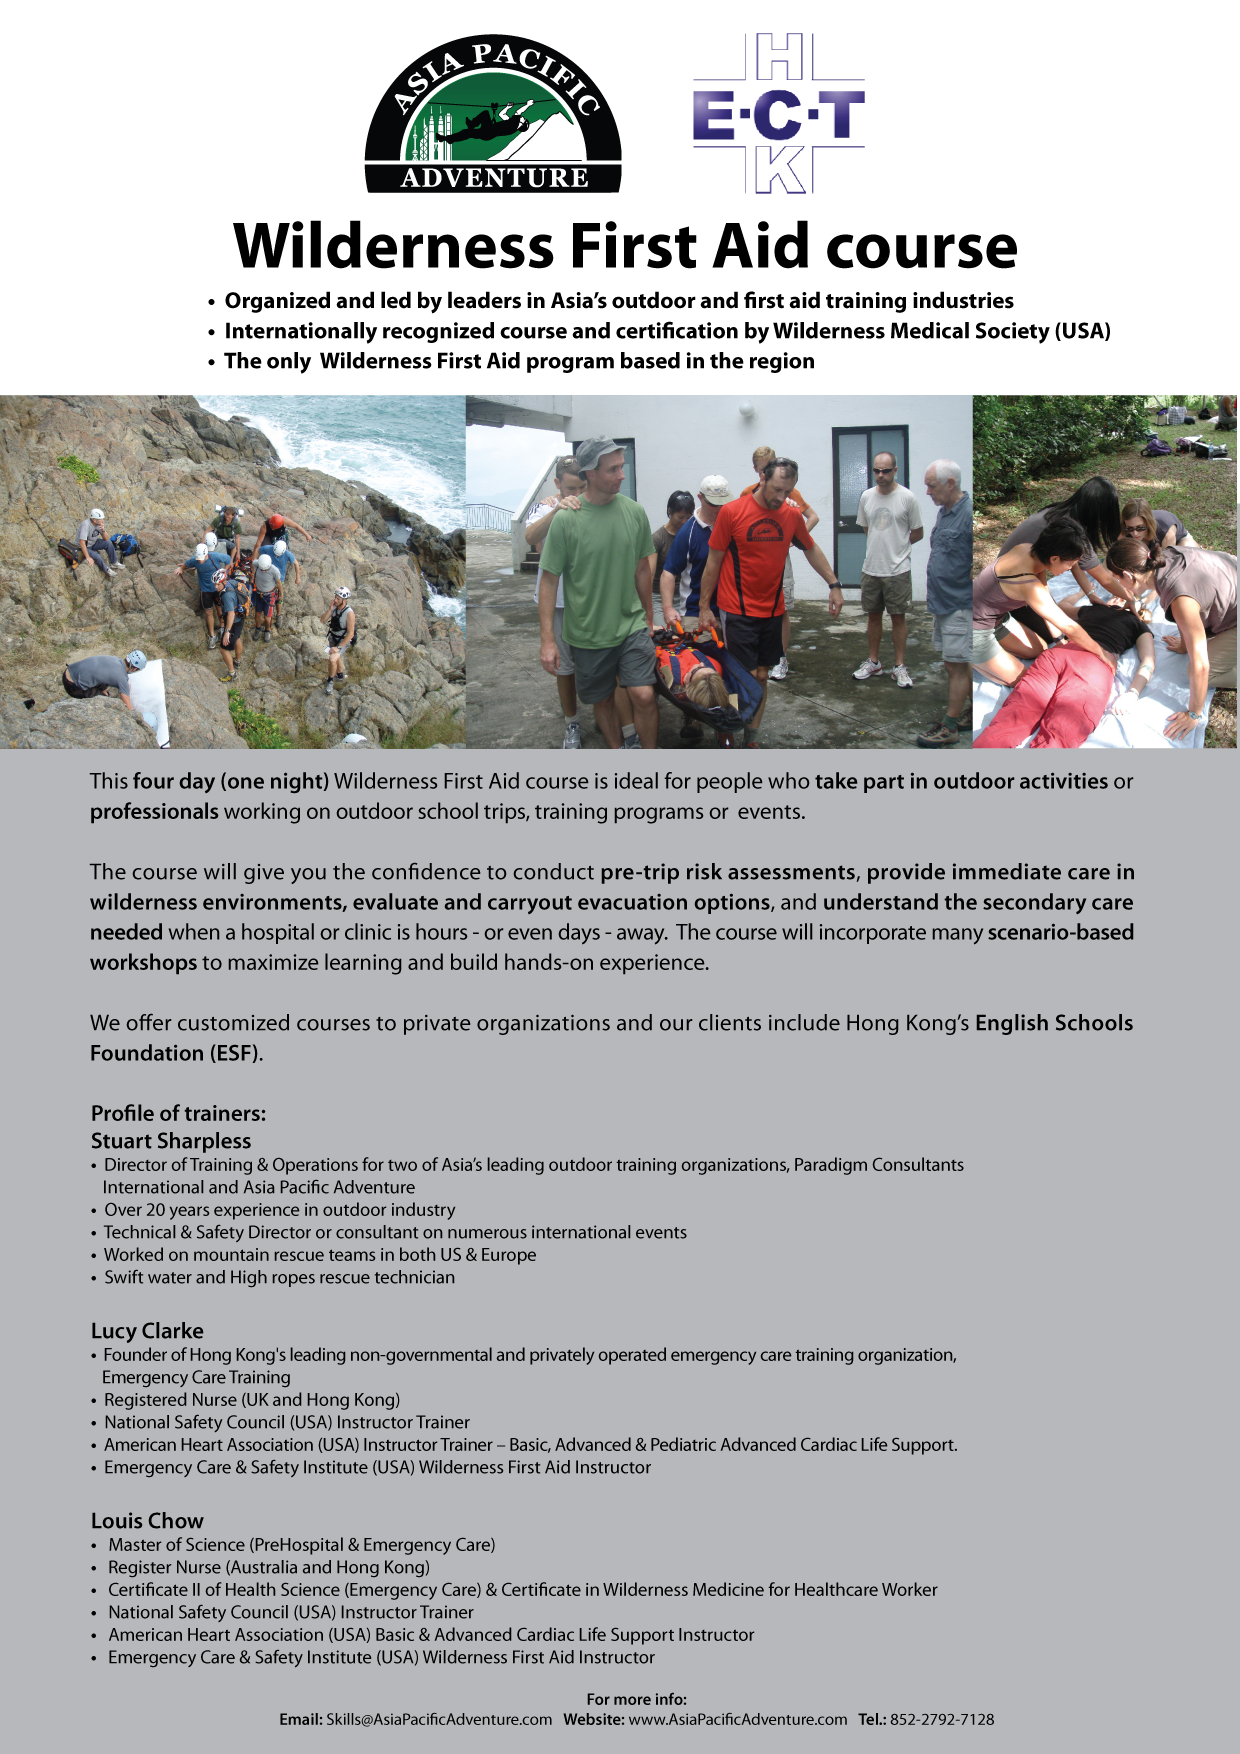 Wilderness First Aid - Asia Pacific Adventure